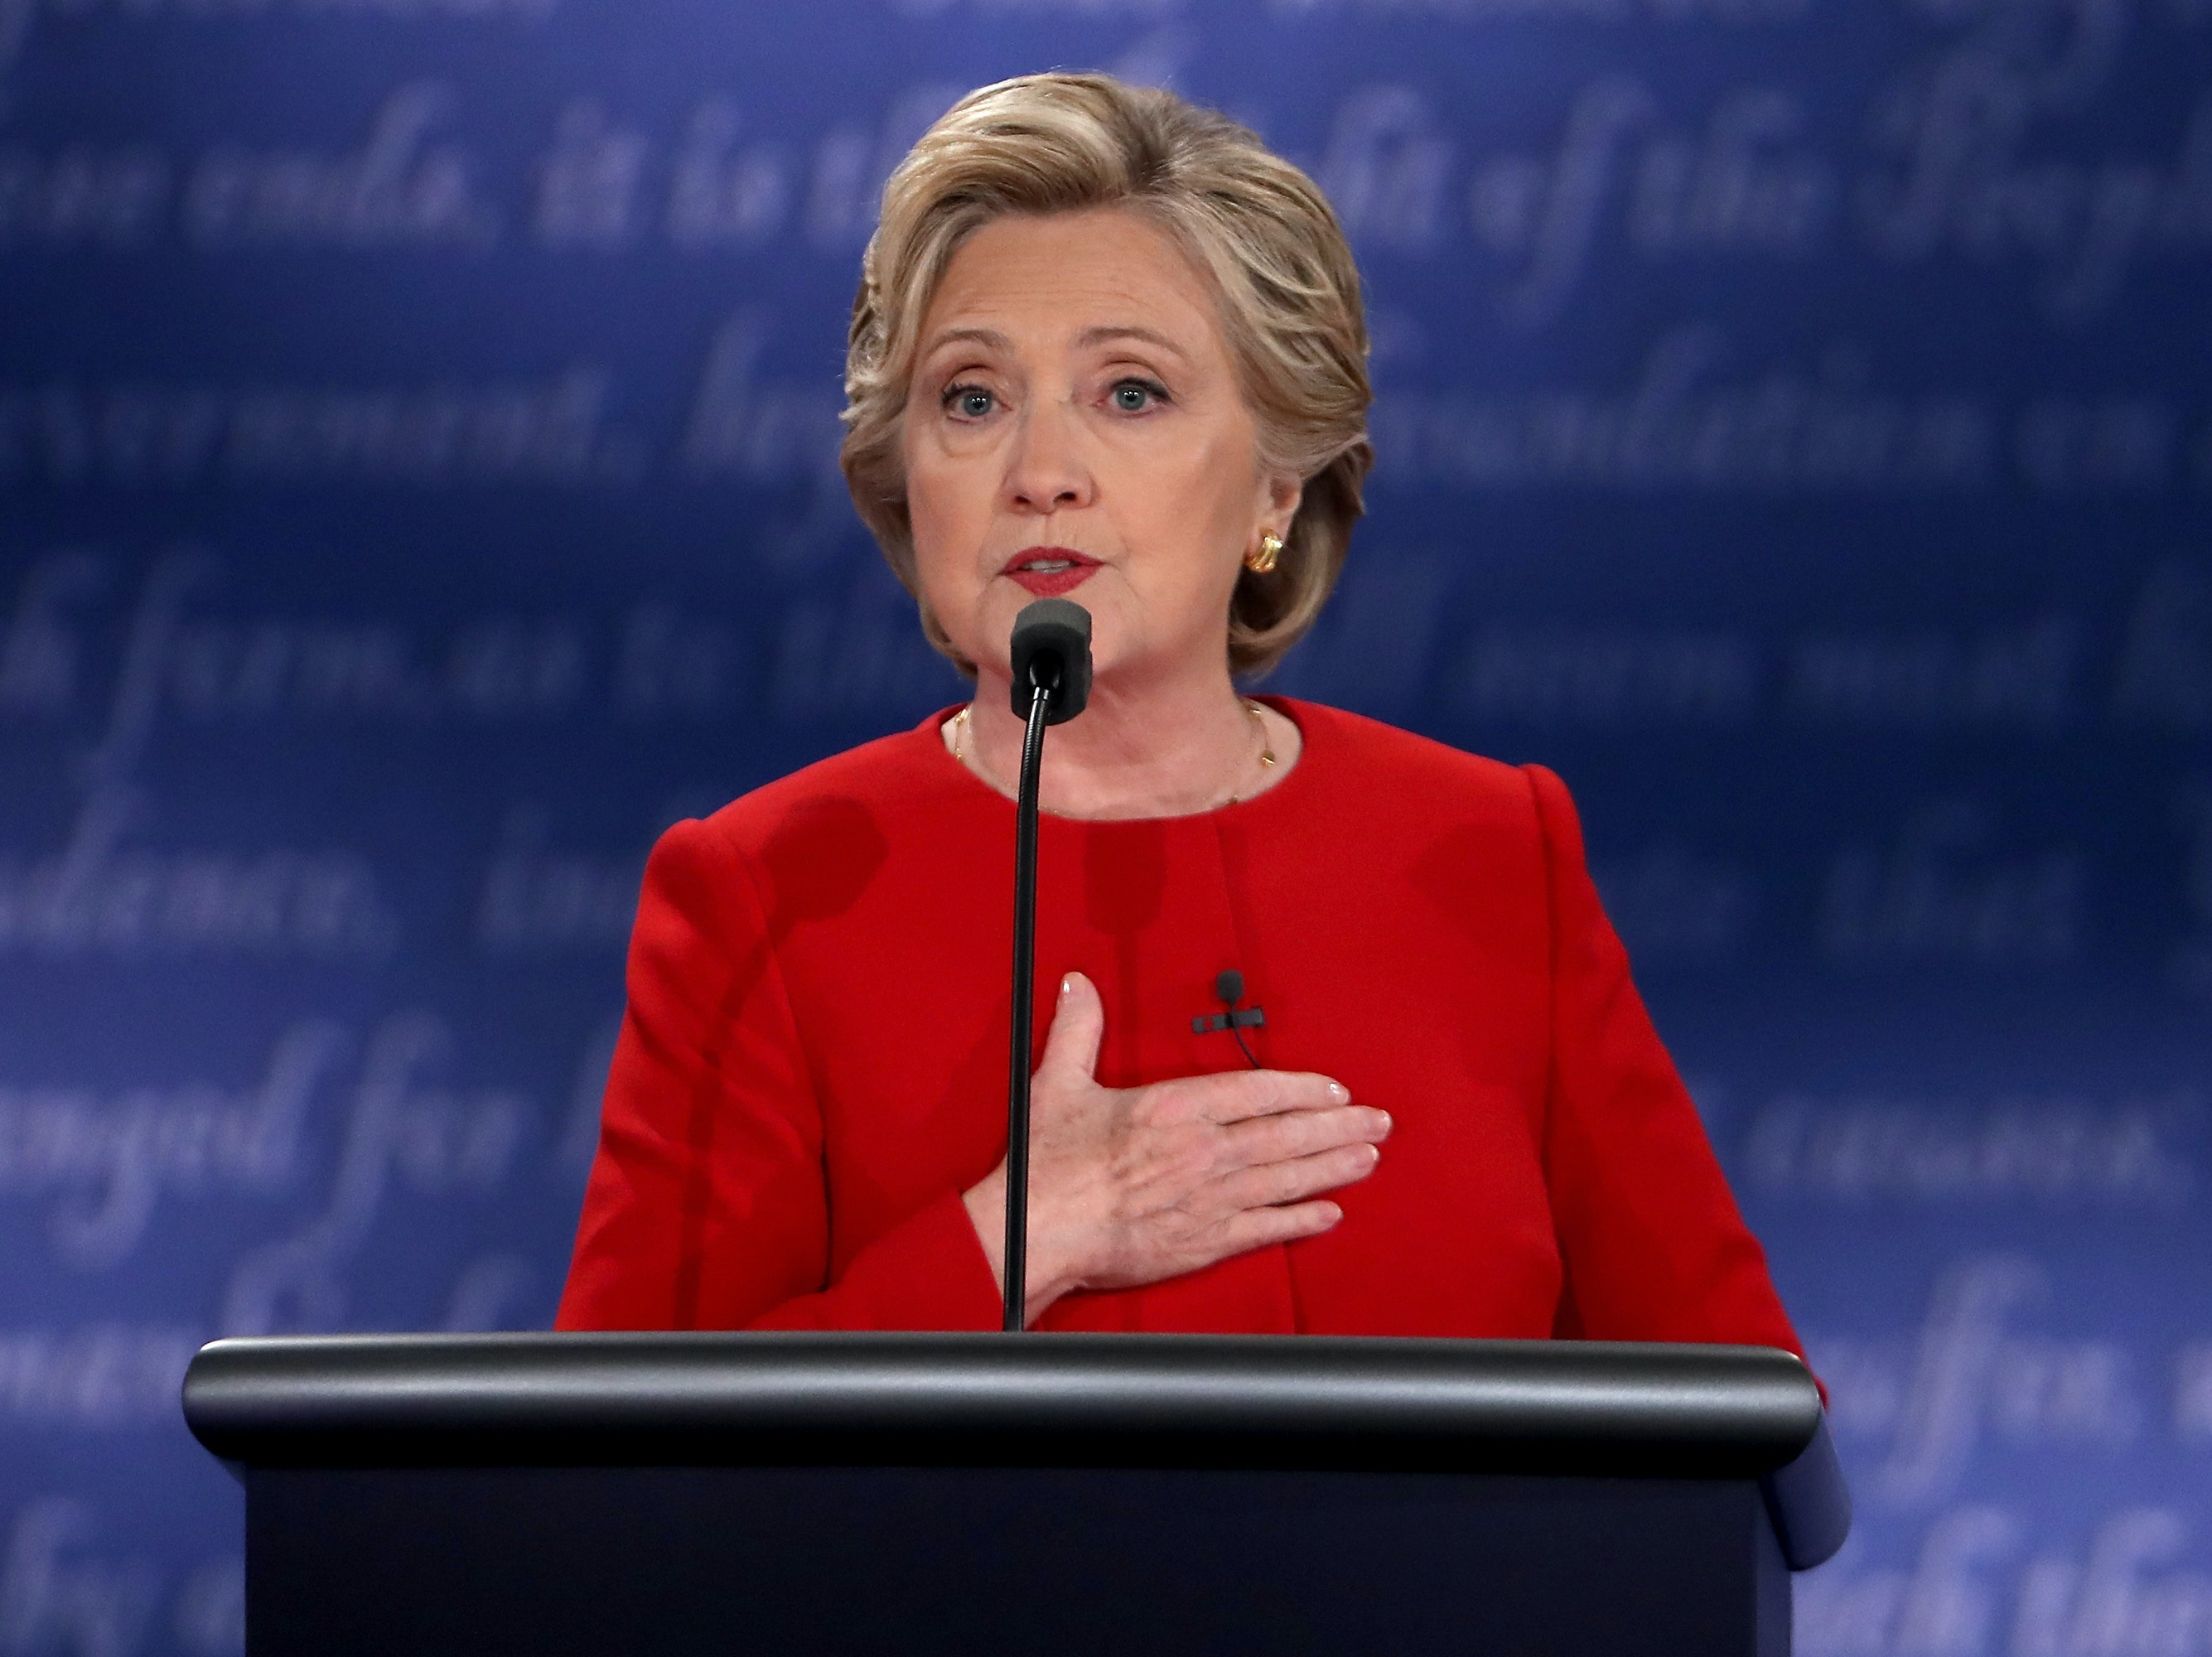 Hillary Clinton discussed the implicit bias against African Americans at the debate.